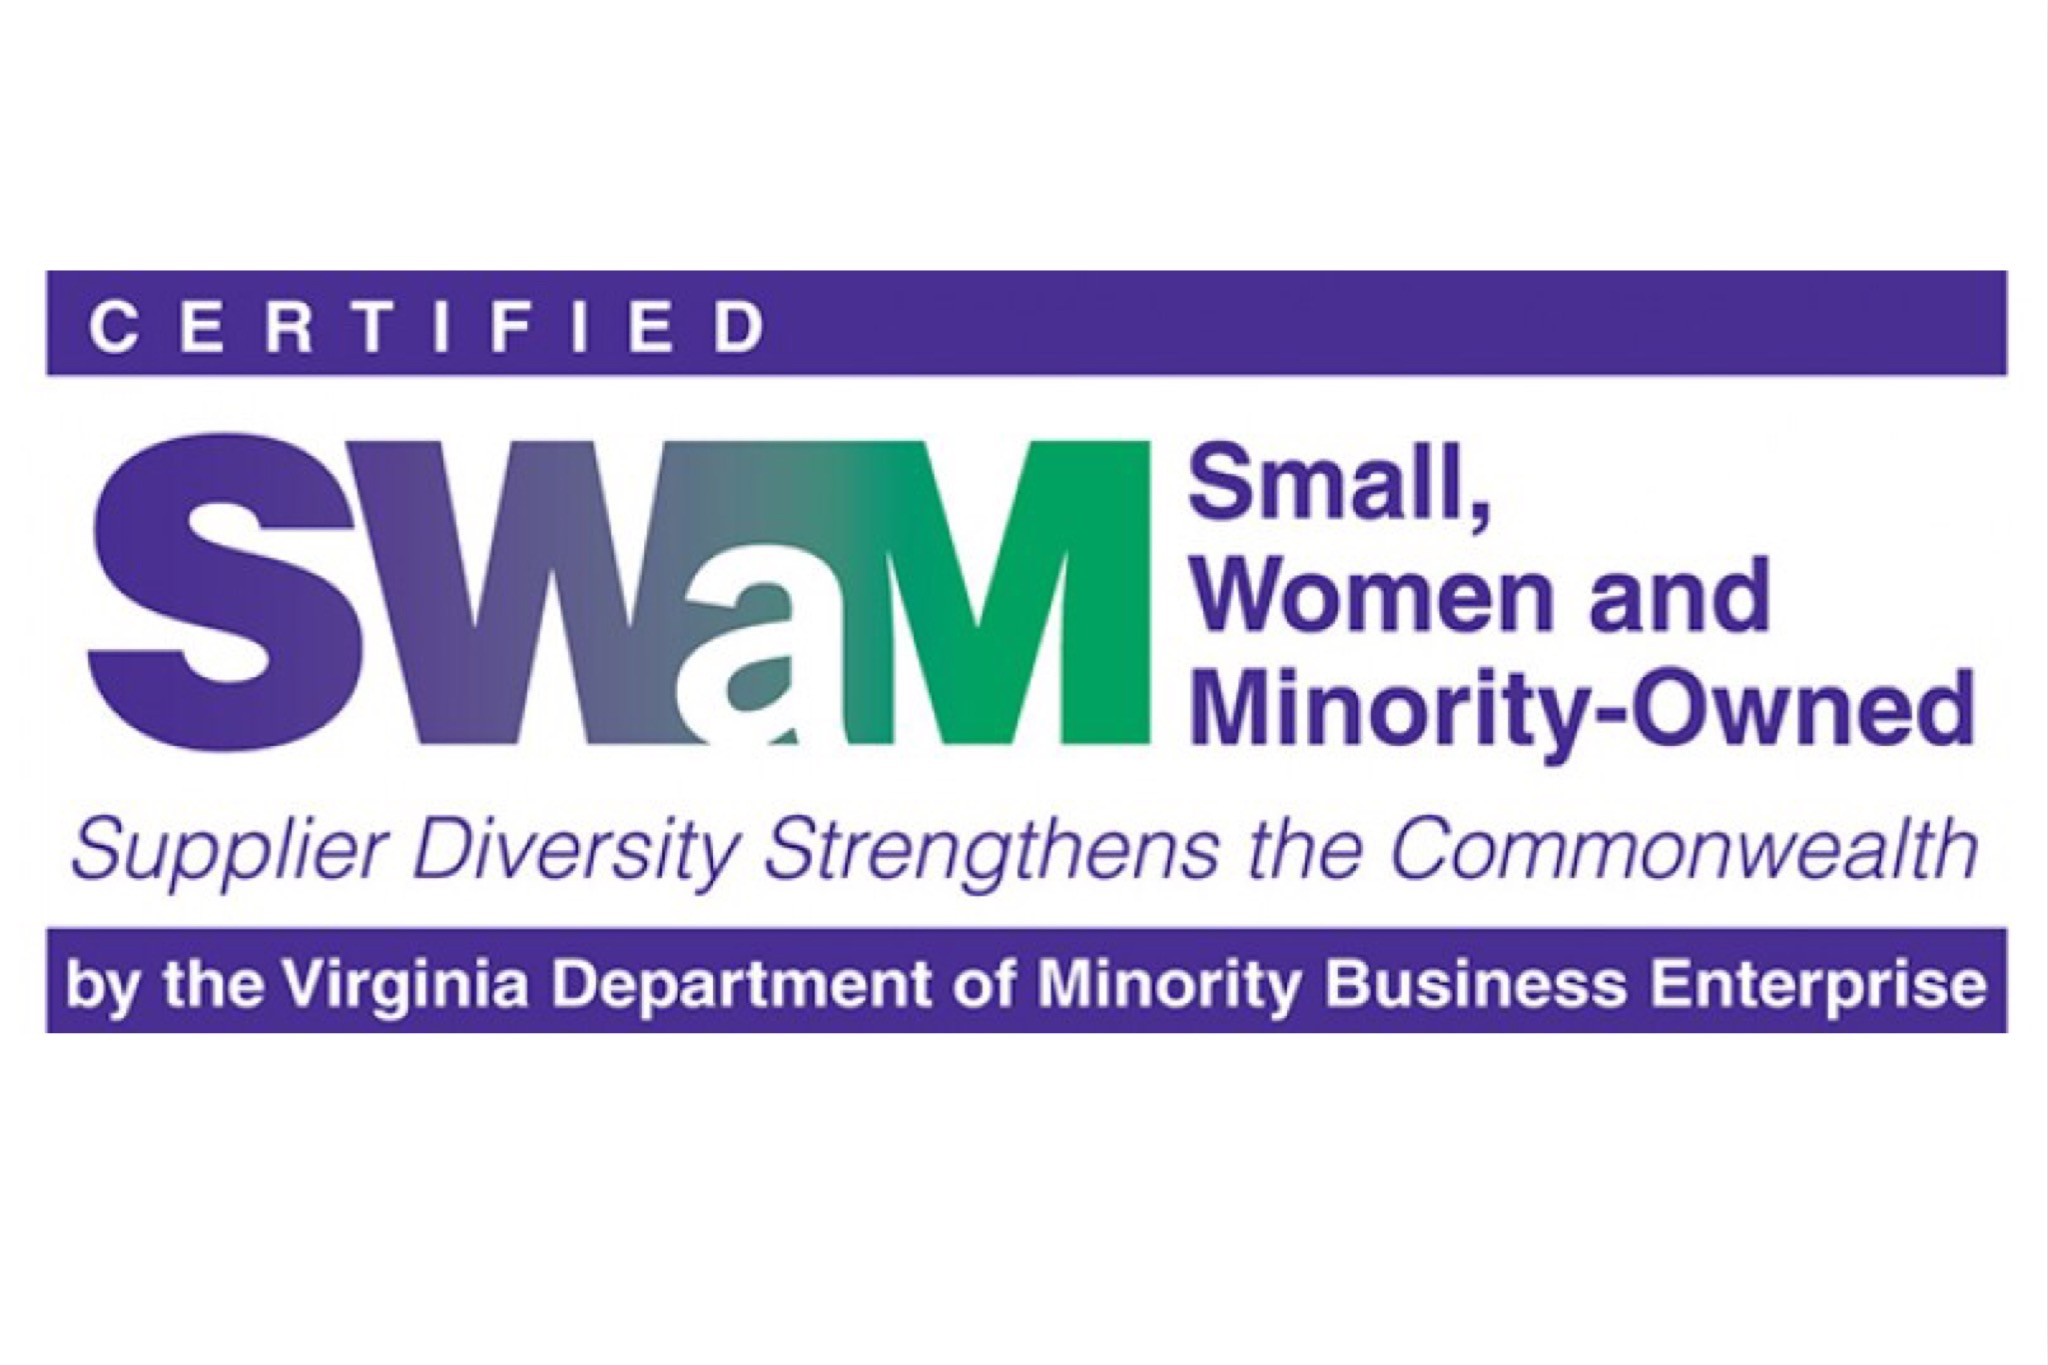 Certified Small, Woman and Minority-Owned